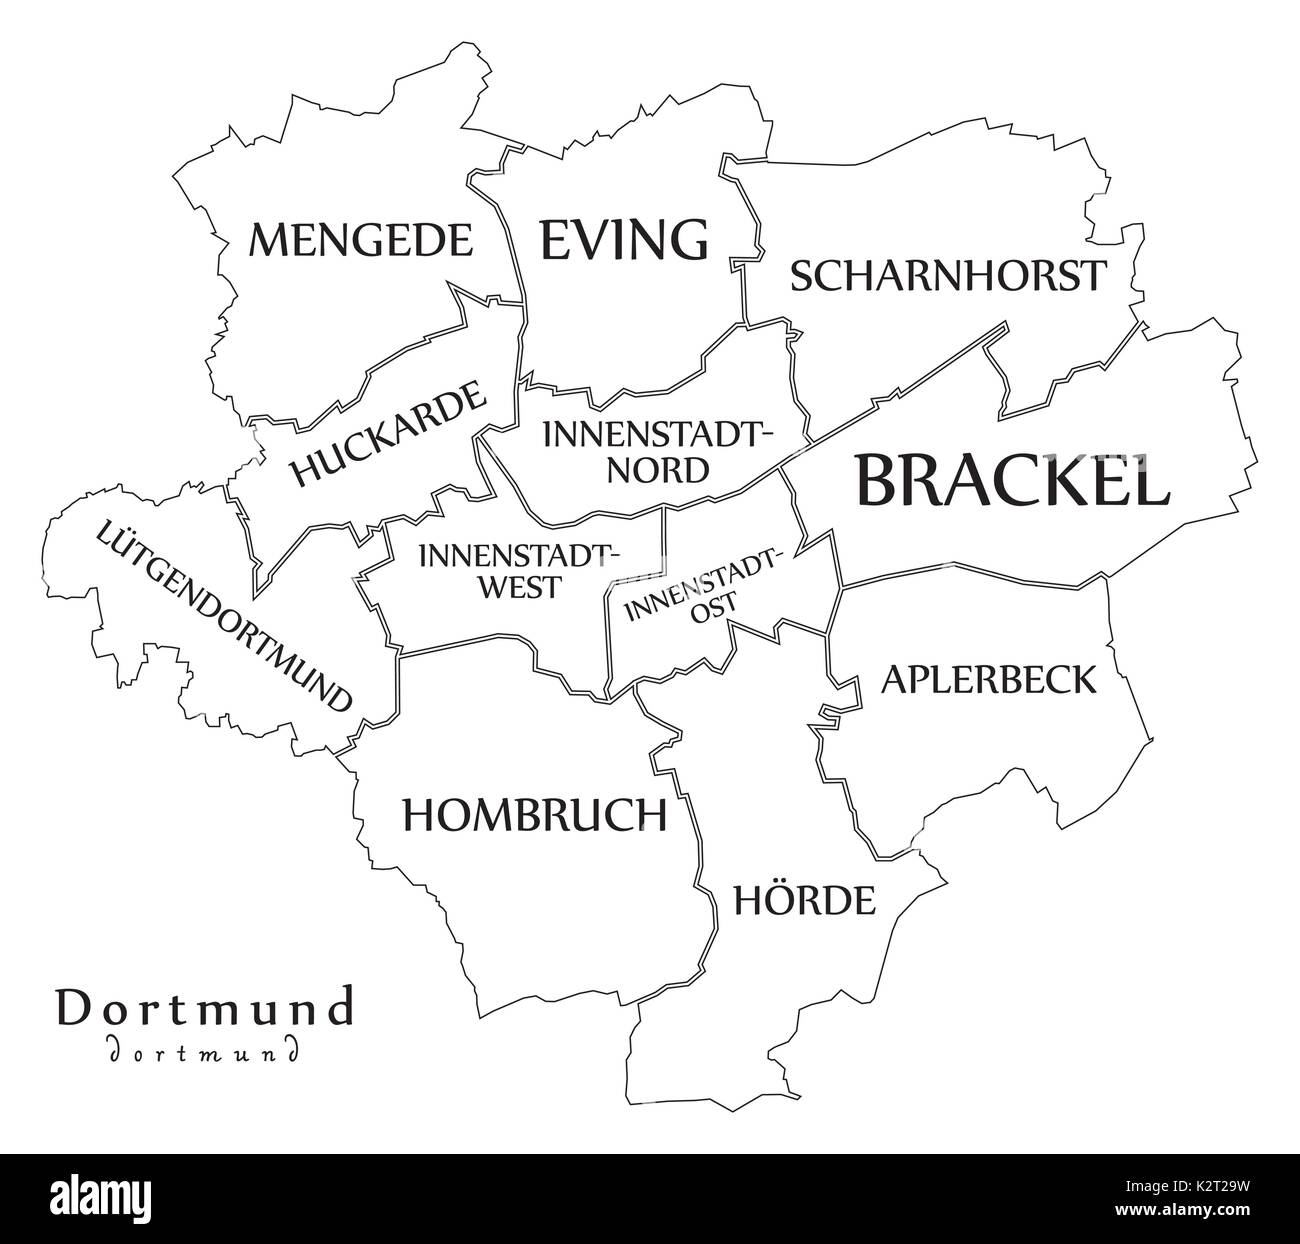 Dortmund On Map Of Germany.Modern City Map Dortmund City Of Germany With Boroughs And Titles